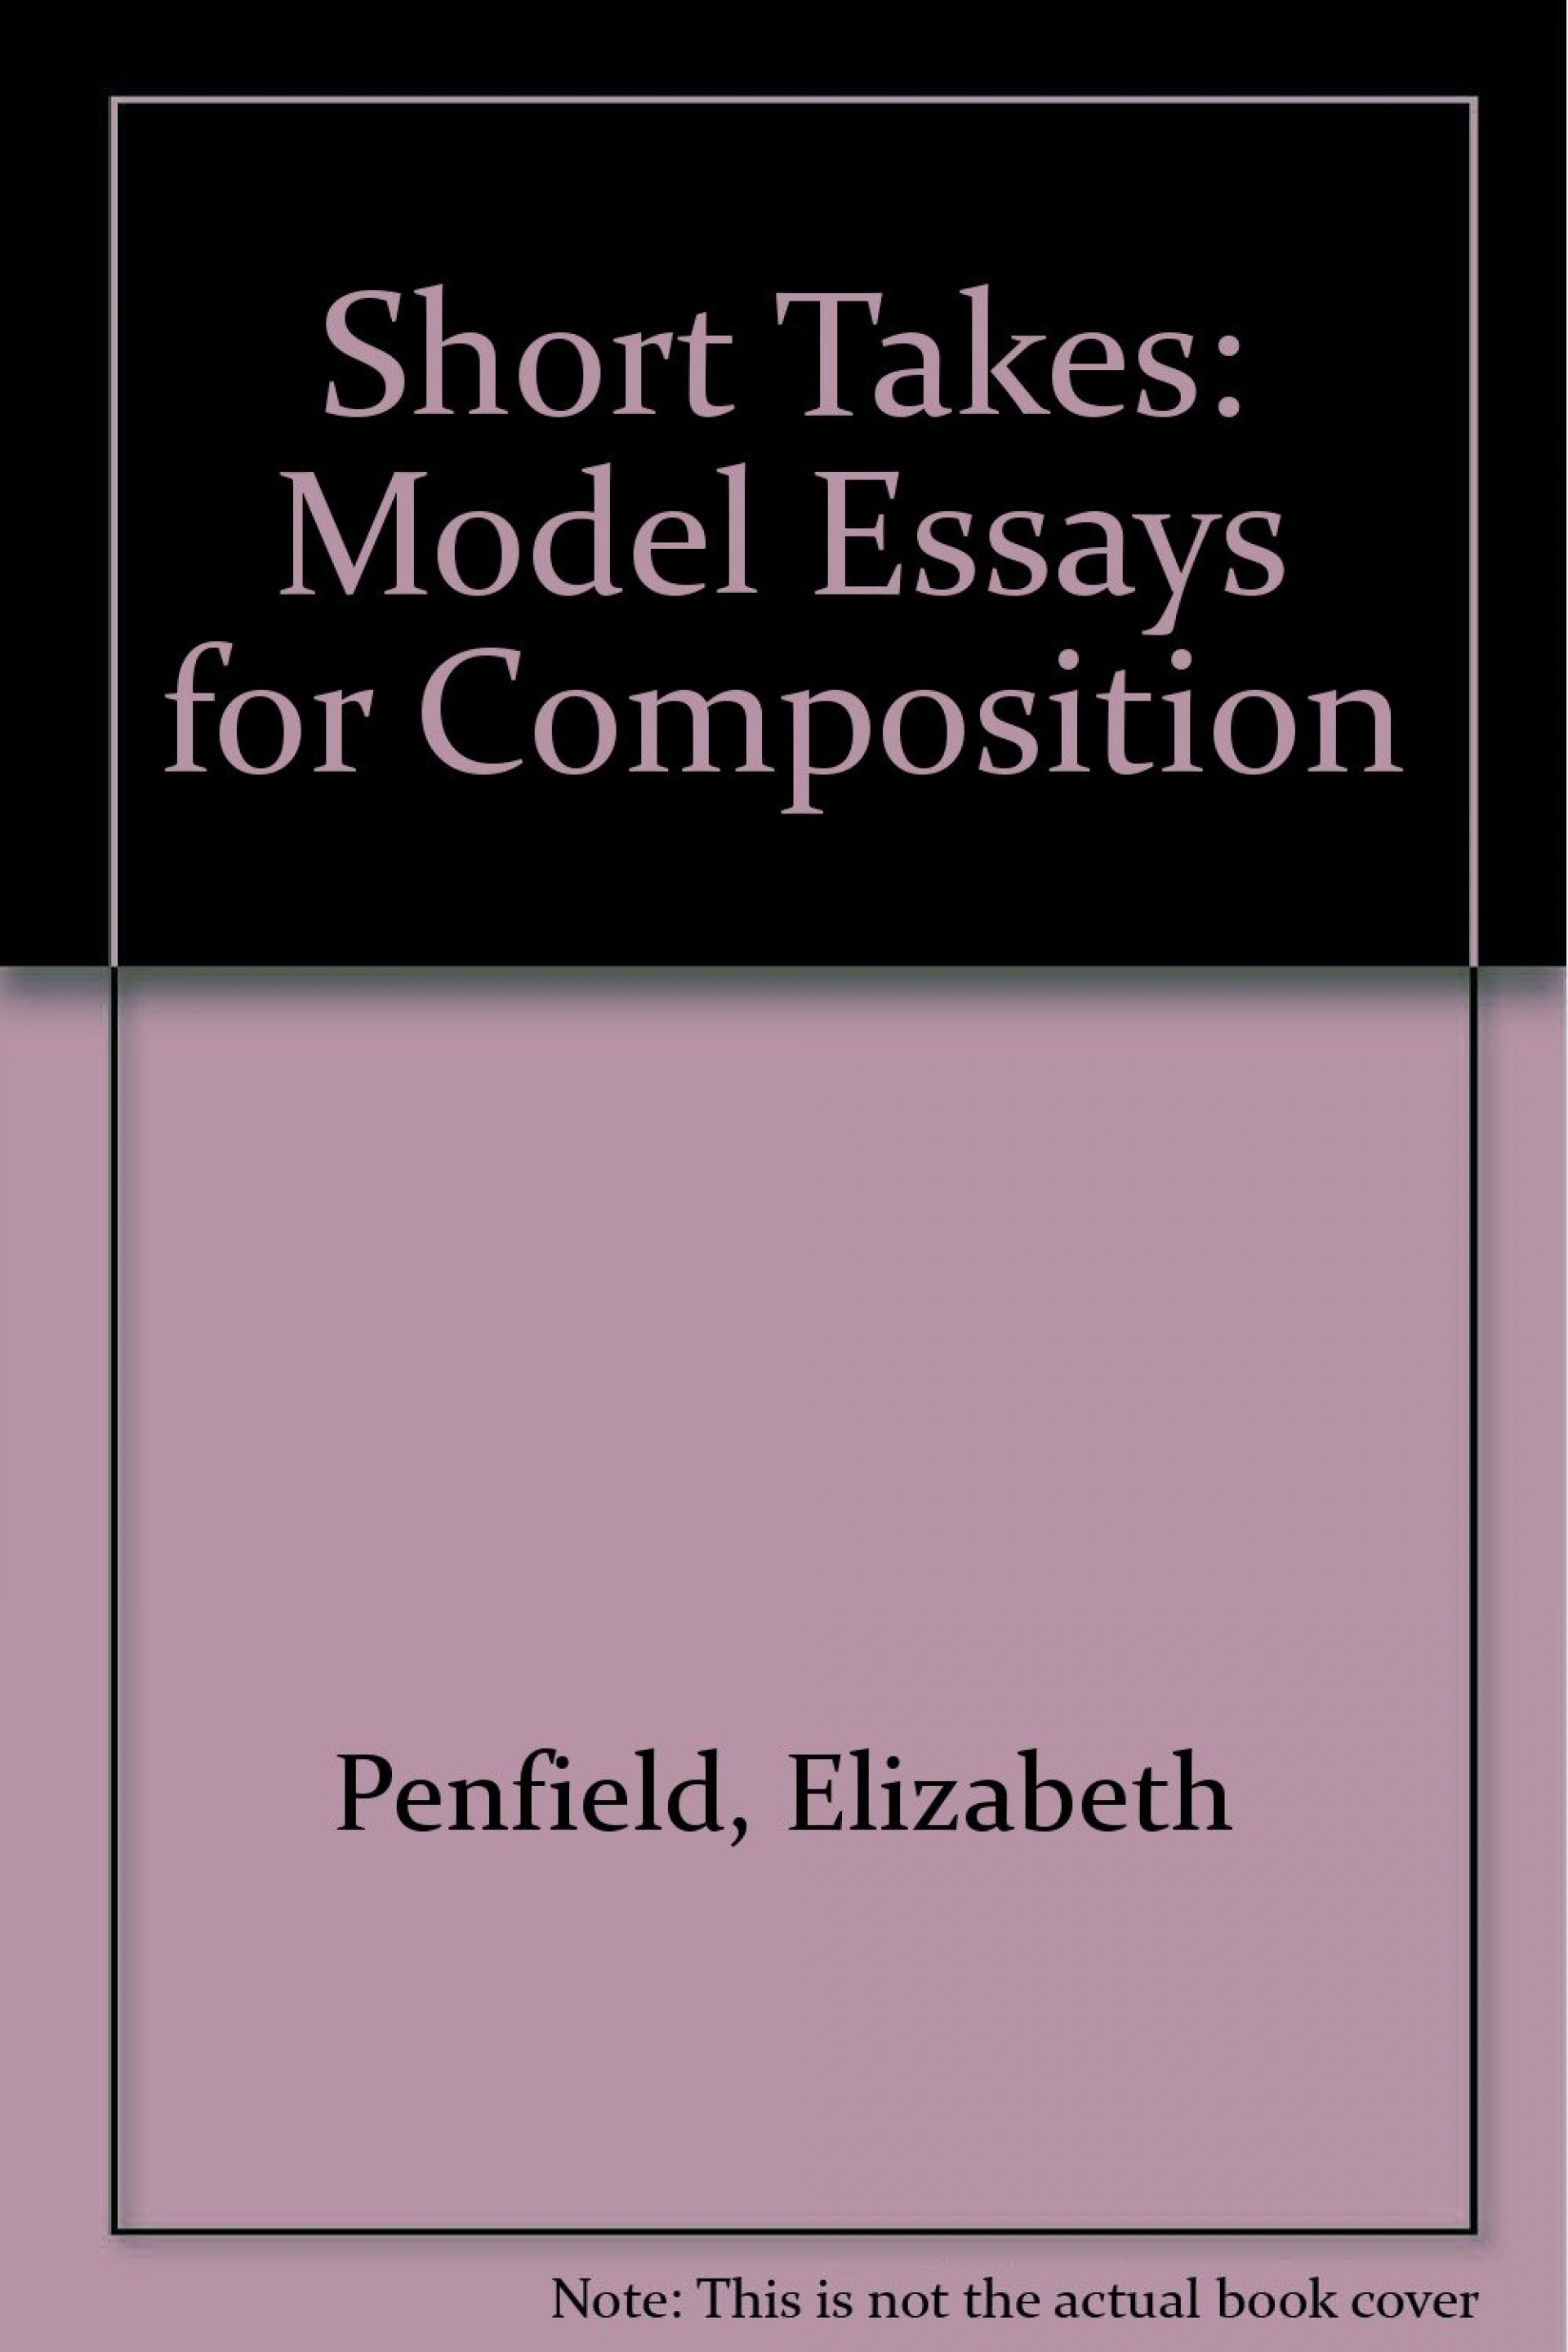 015 Essay Example 61cenqqb8bl Models For Writers Short Essays Singular Composition 12th Edition 13th Pdf 1920